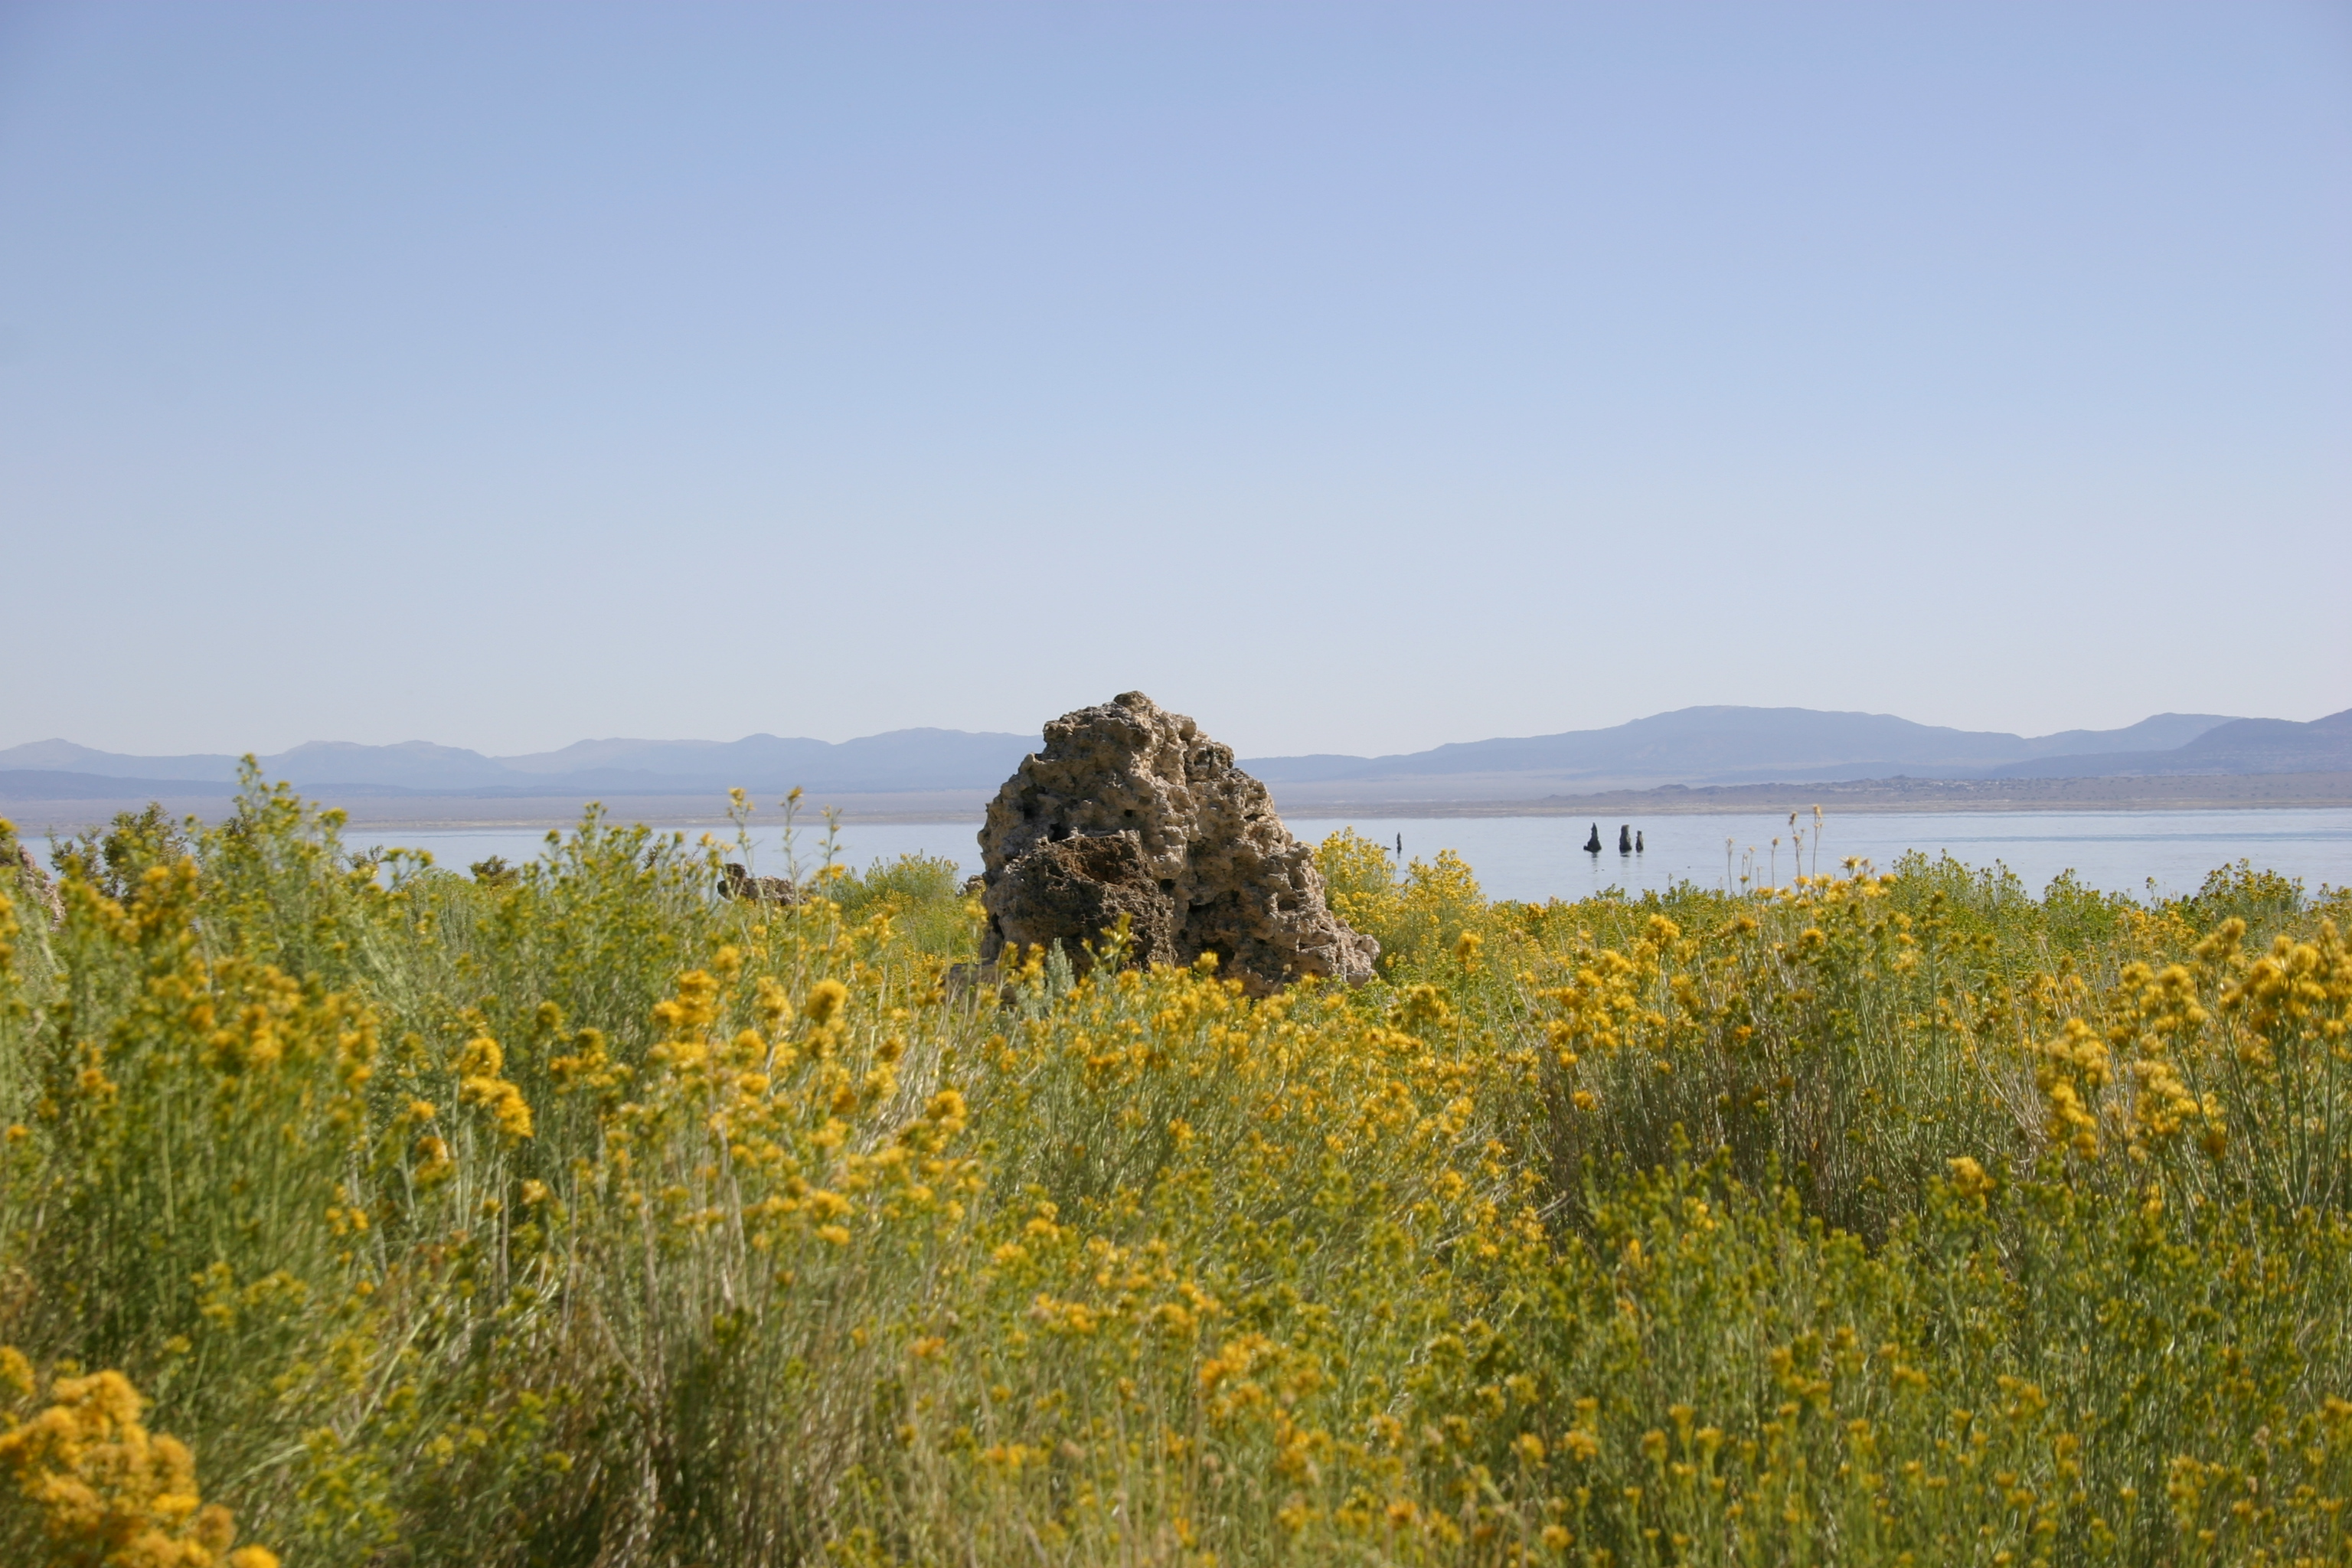 Tufa tower surrounded by yellow wildflowers at Mono Lake.